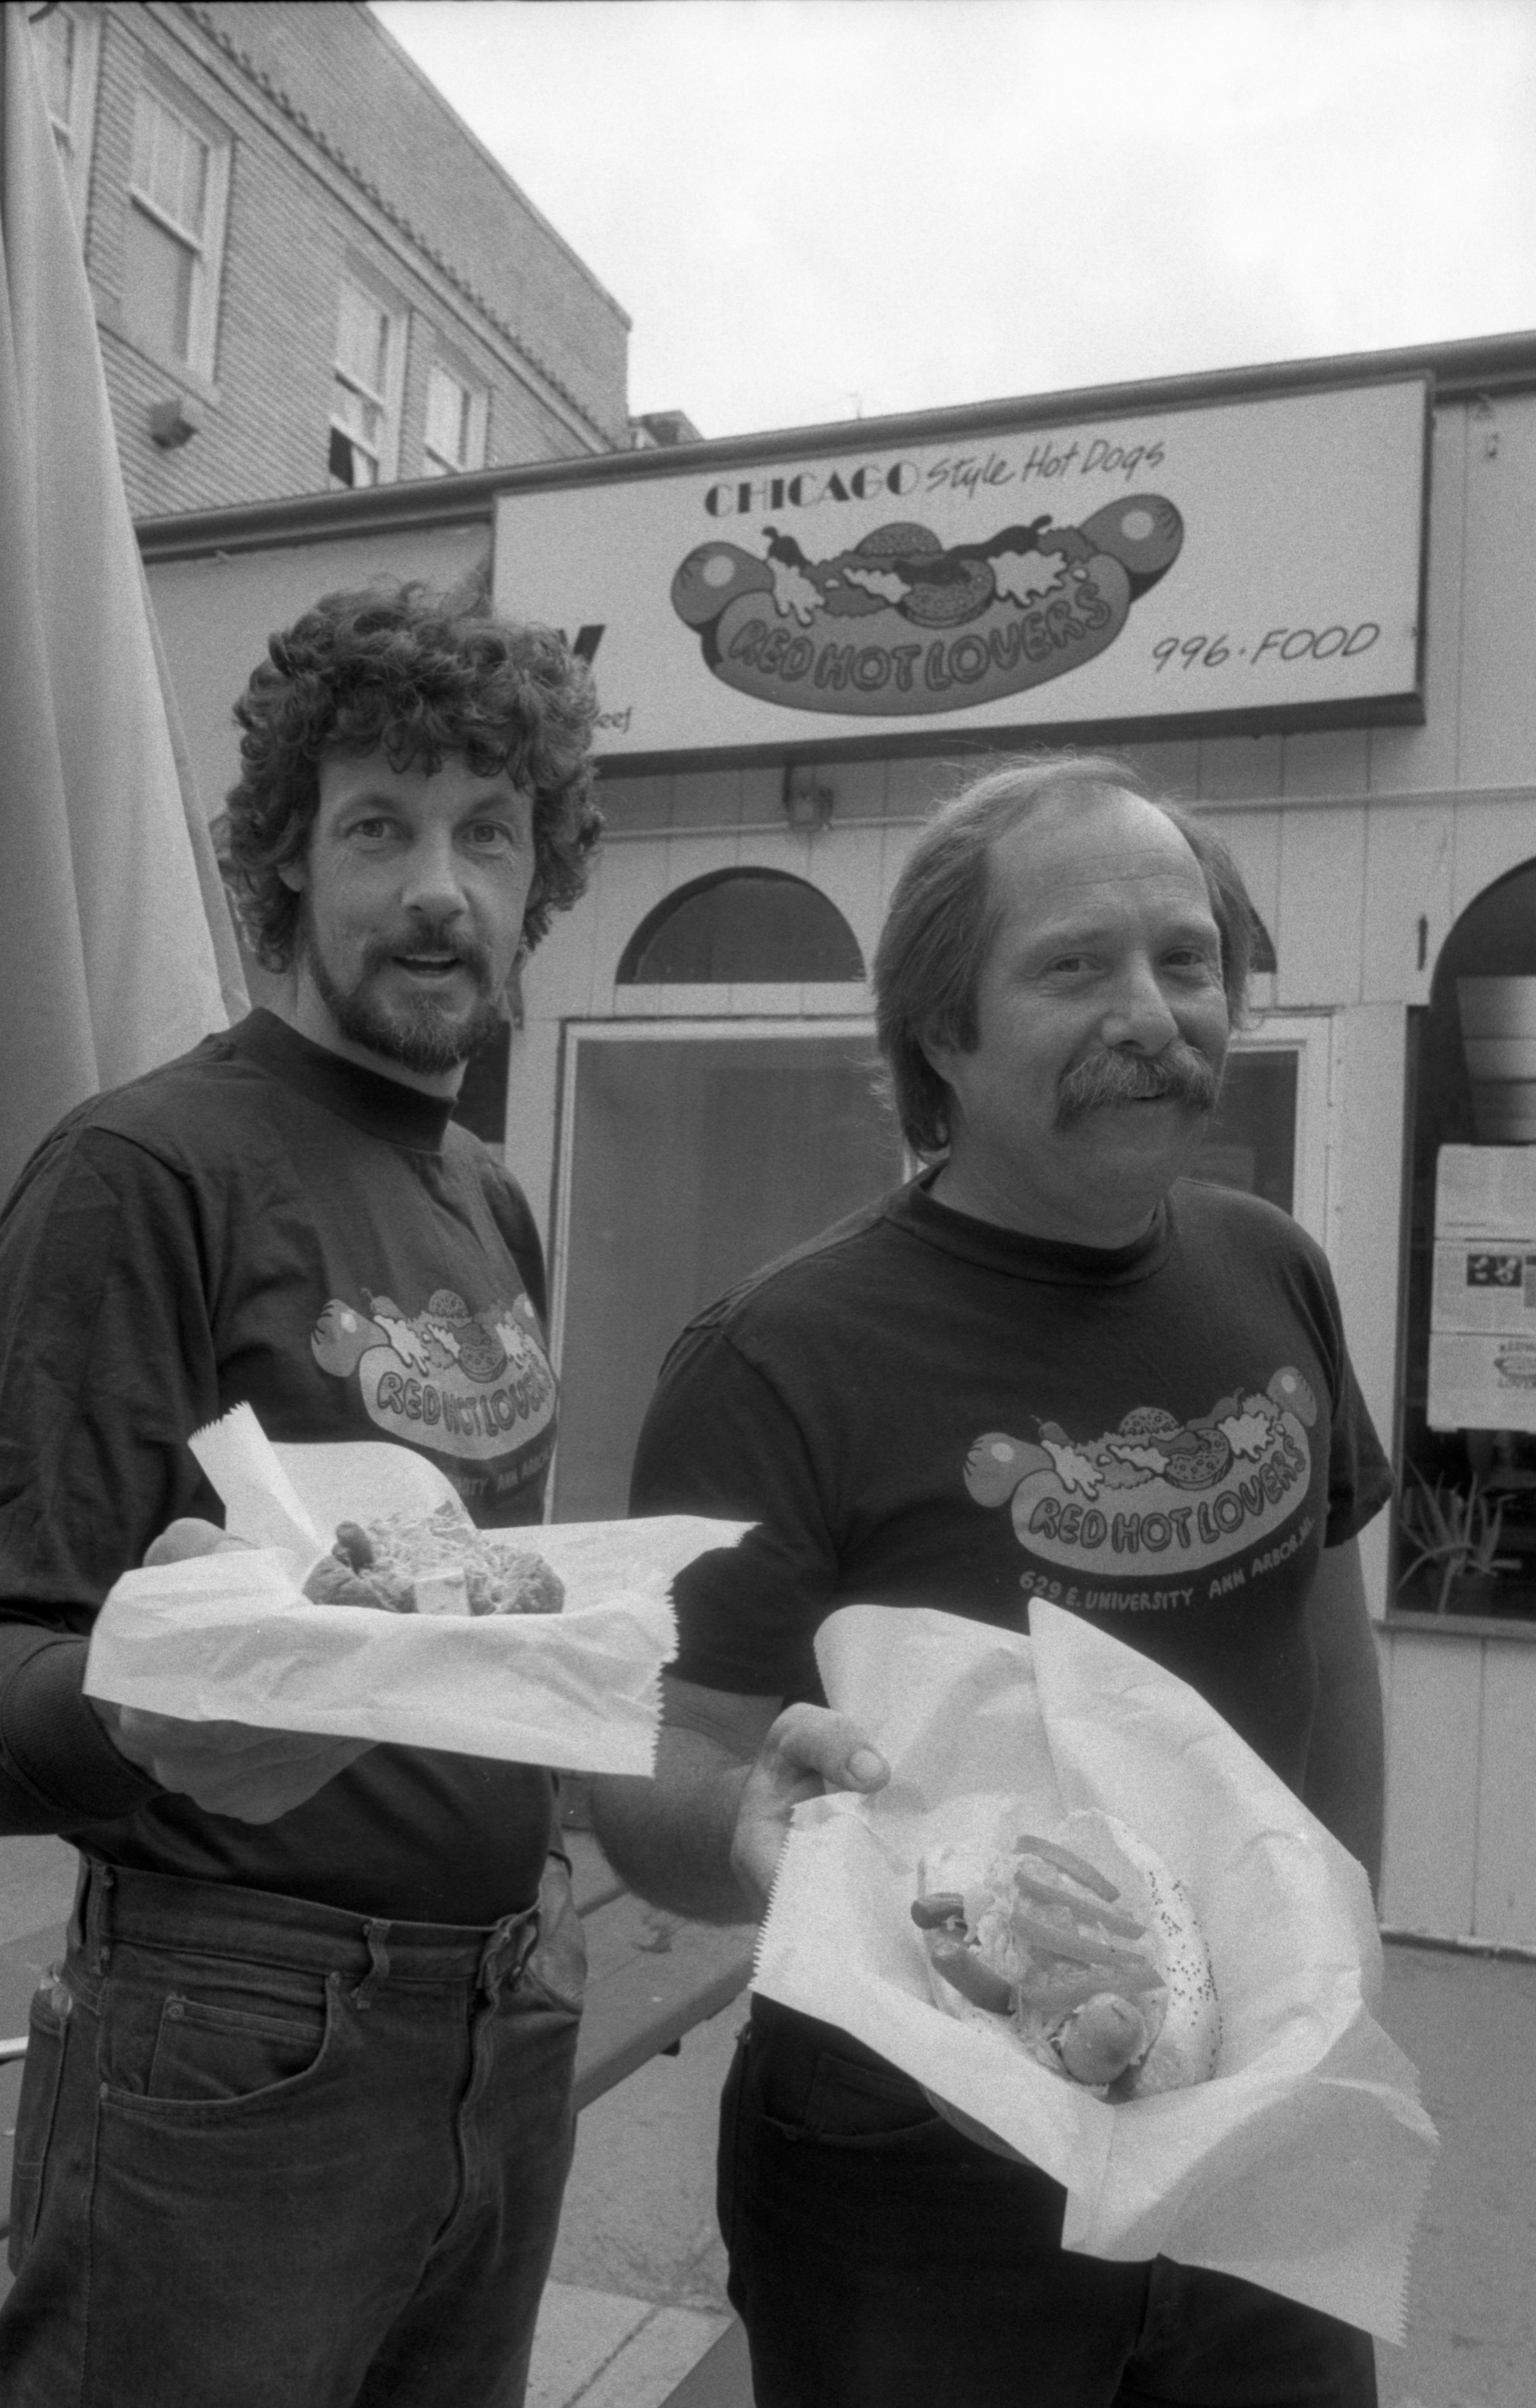 Tom Blackburn & Alan Cantor Owners Of Red Hot Lovers Restaurant, September 5, 1985 image